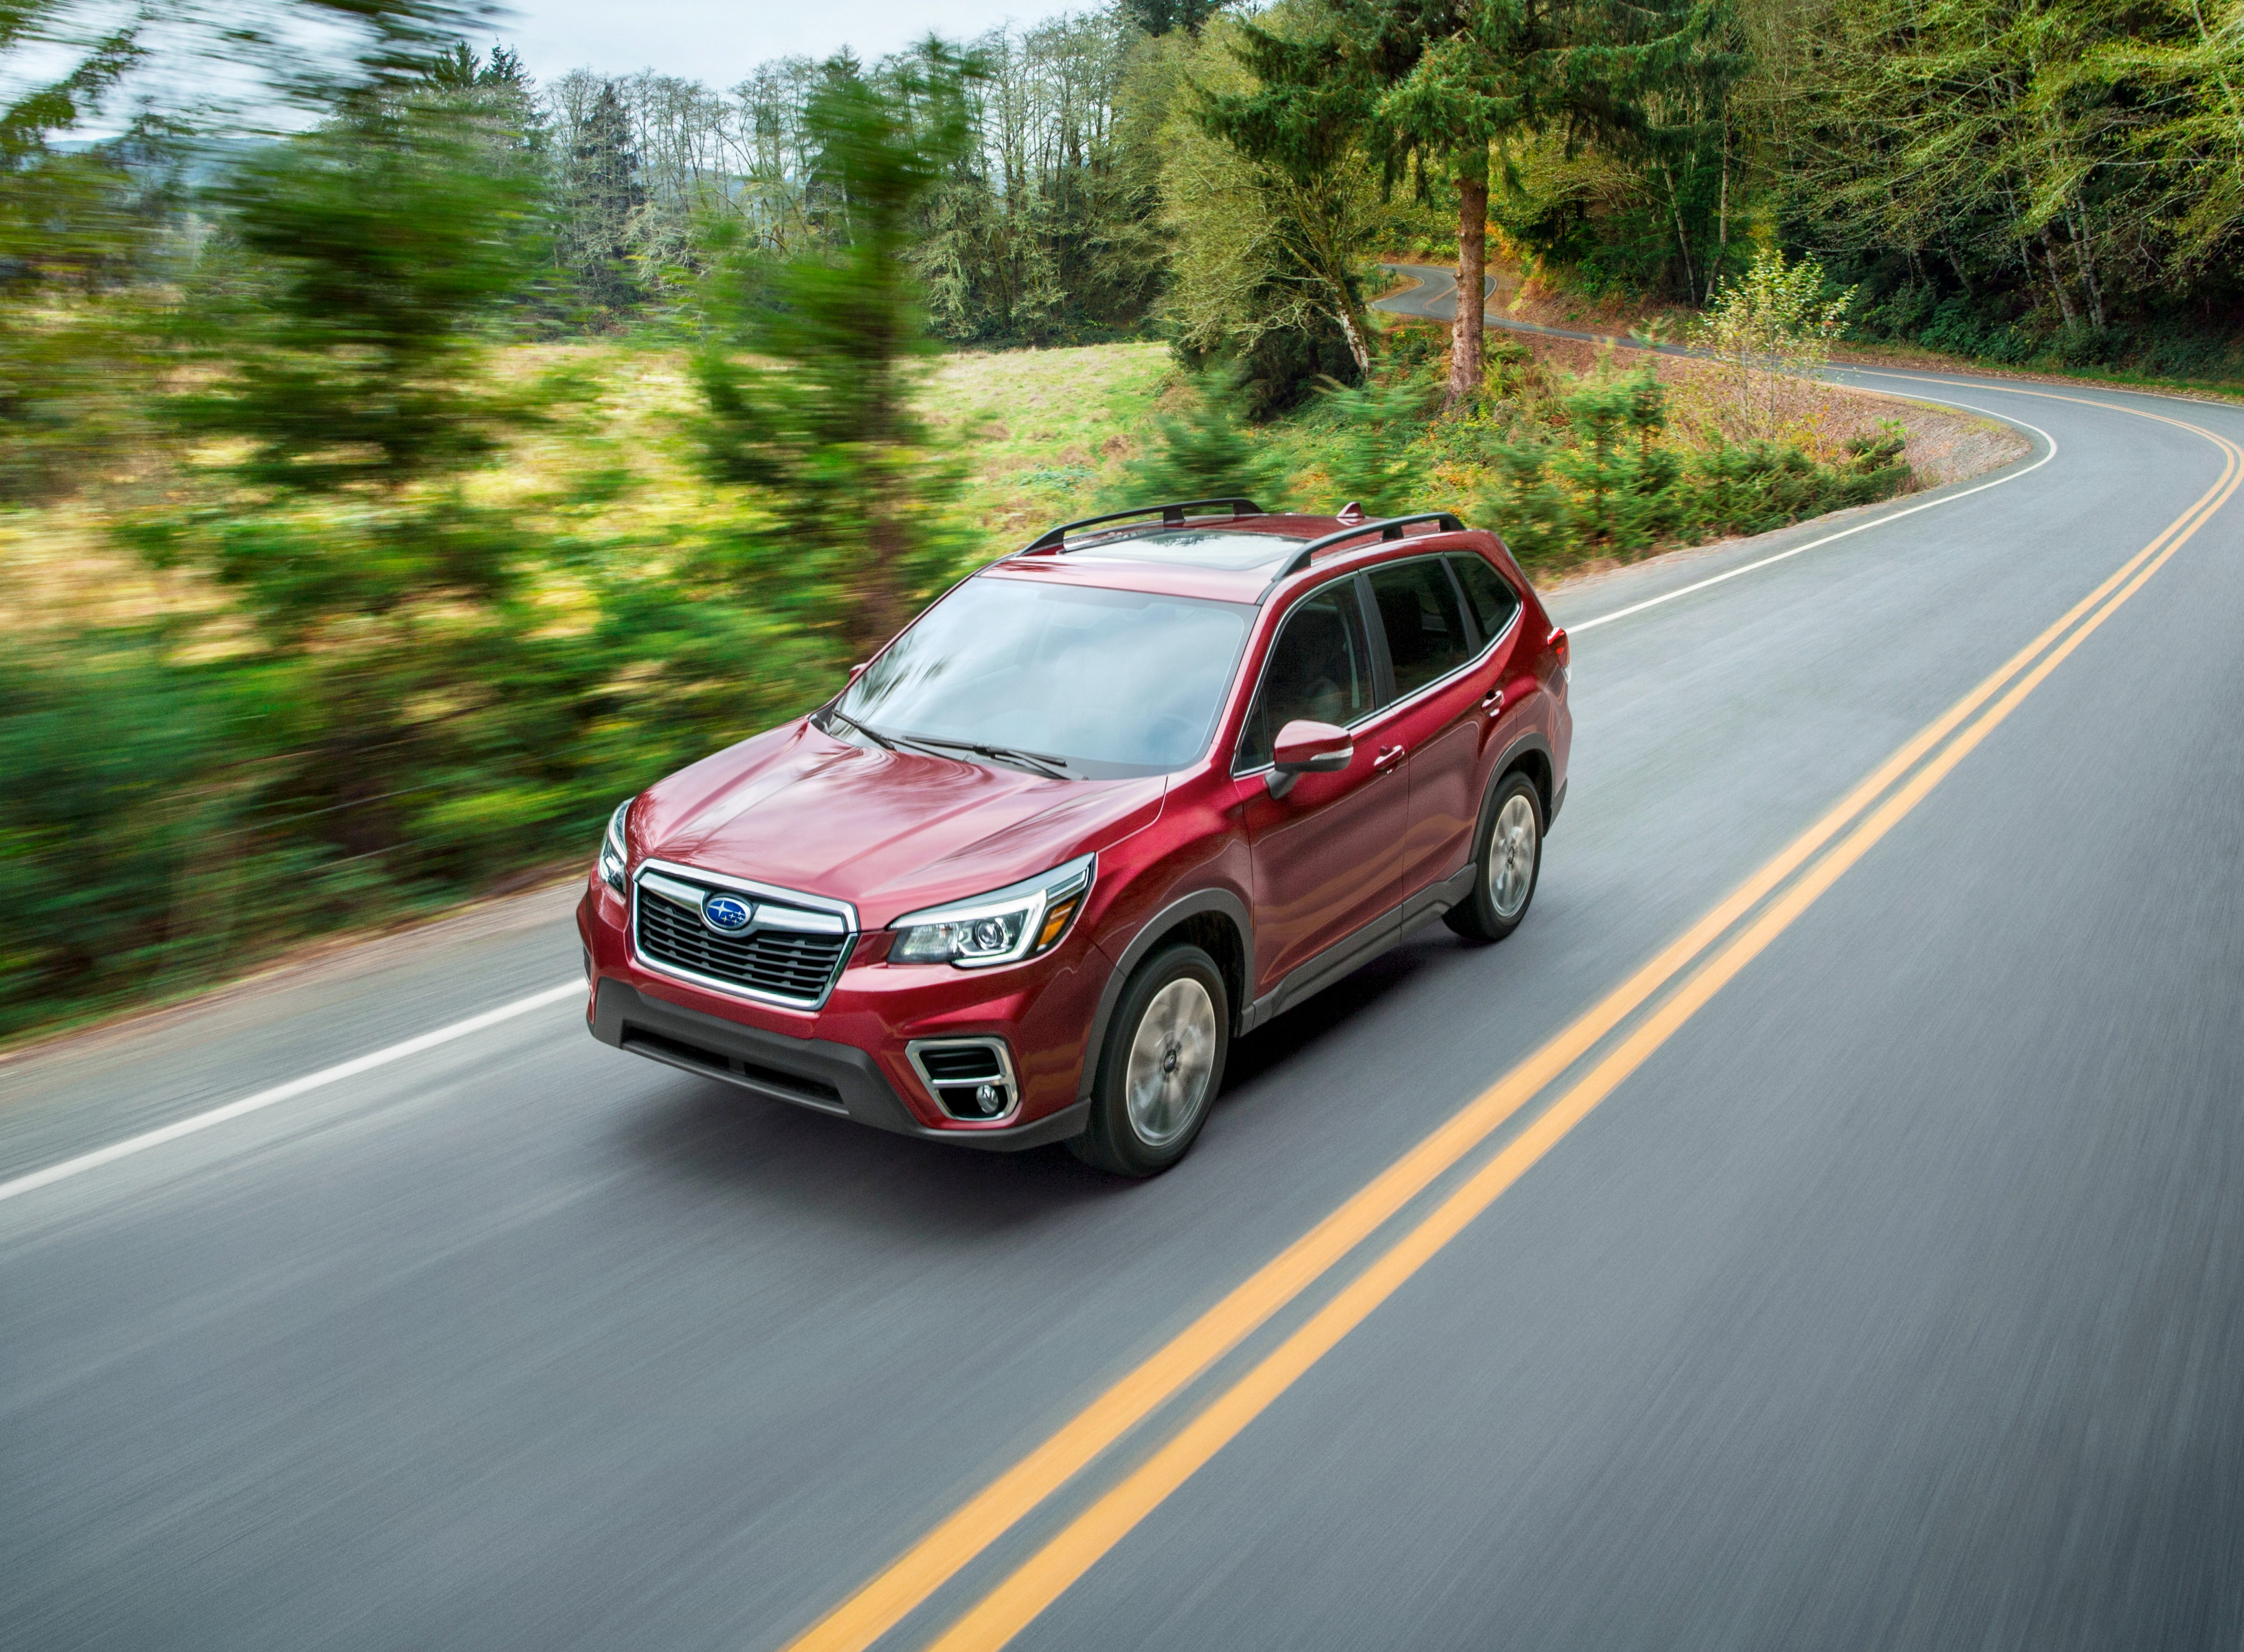 Subaru suddenly can't make Forester, Crosstrek until a possible steering defect is fixed